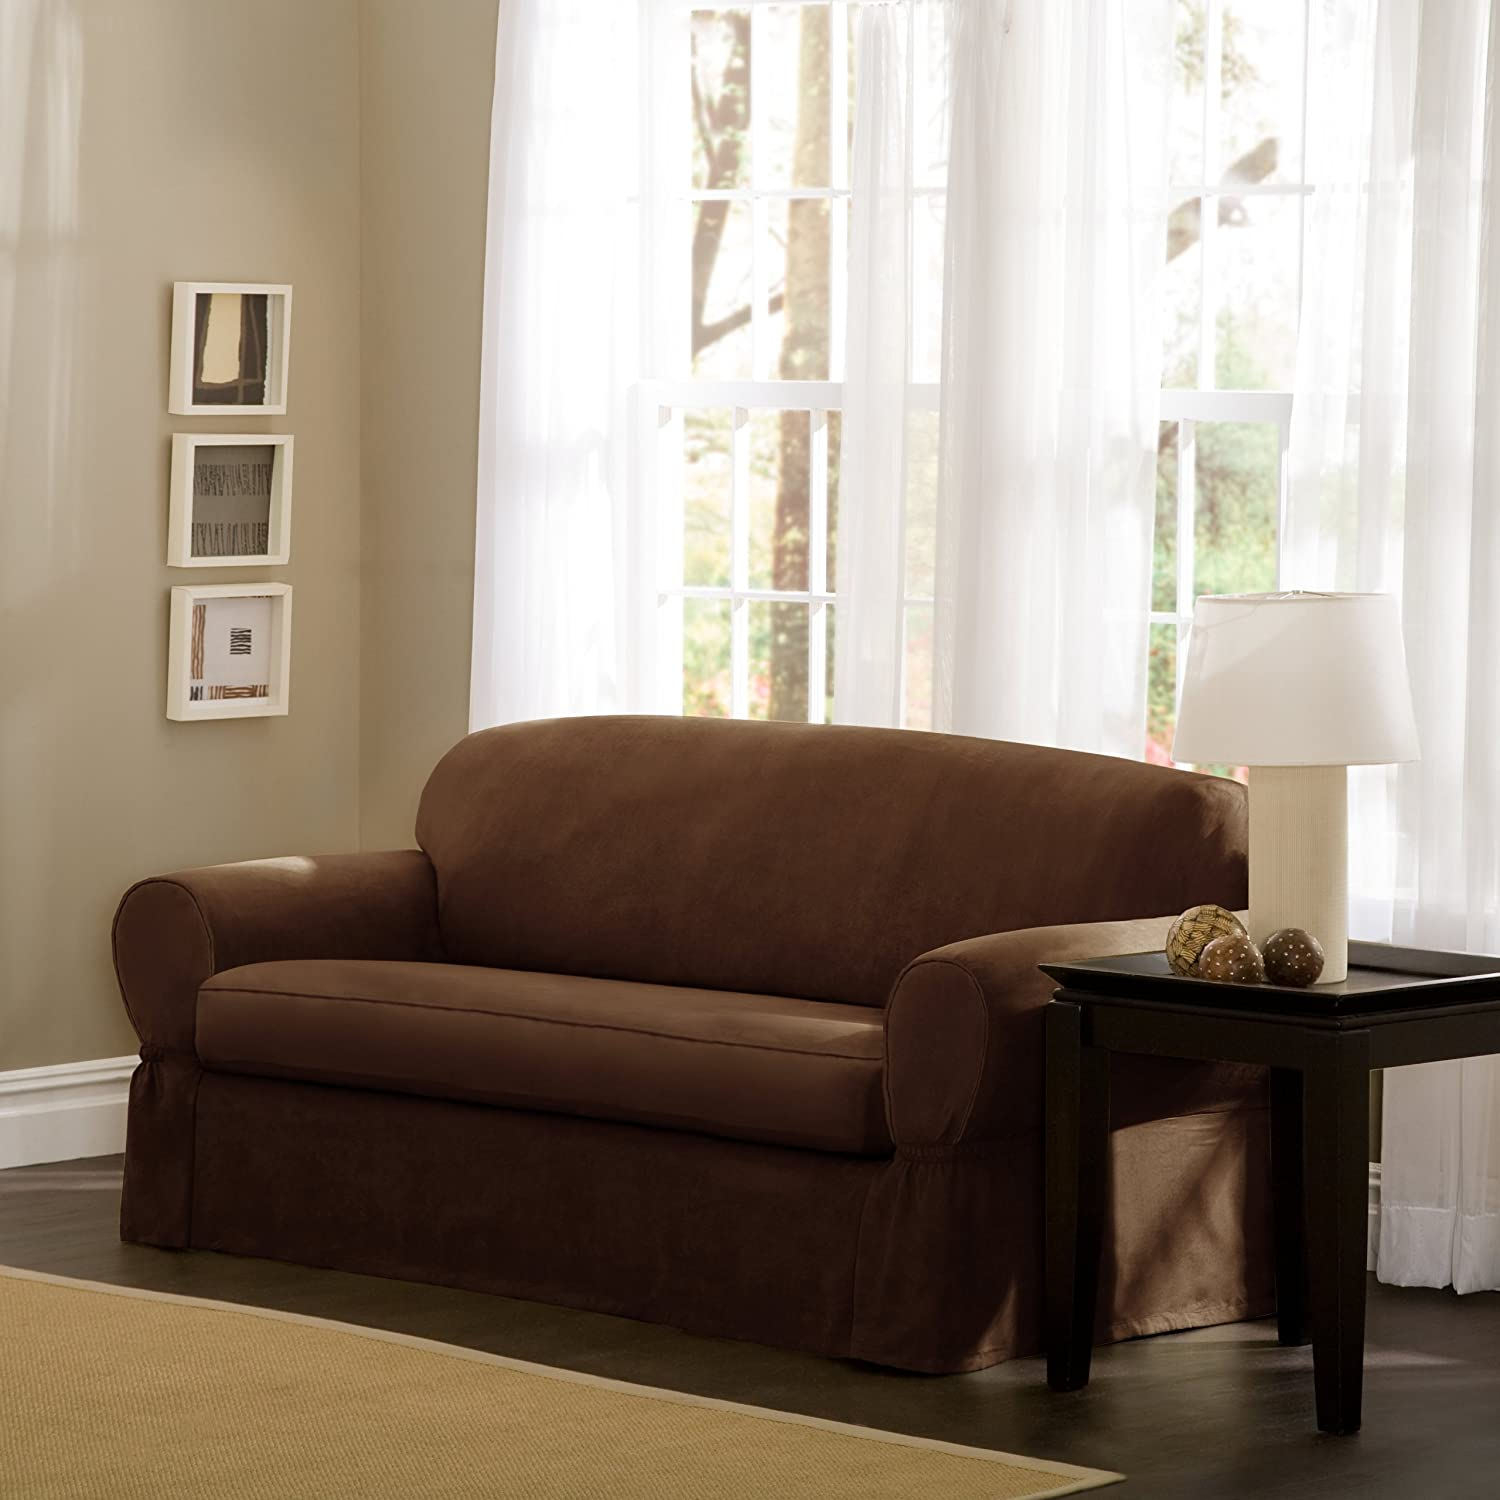 Amazon Maytex Piped Suede 2 Piece Loveseat Slipcover Brown